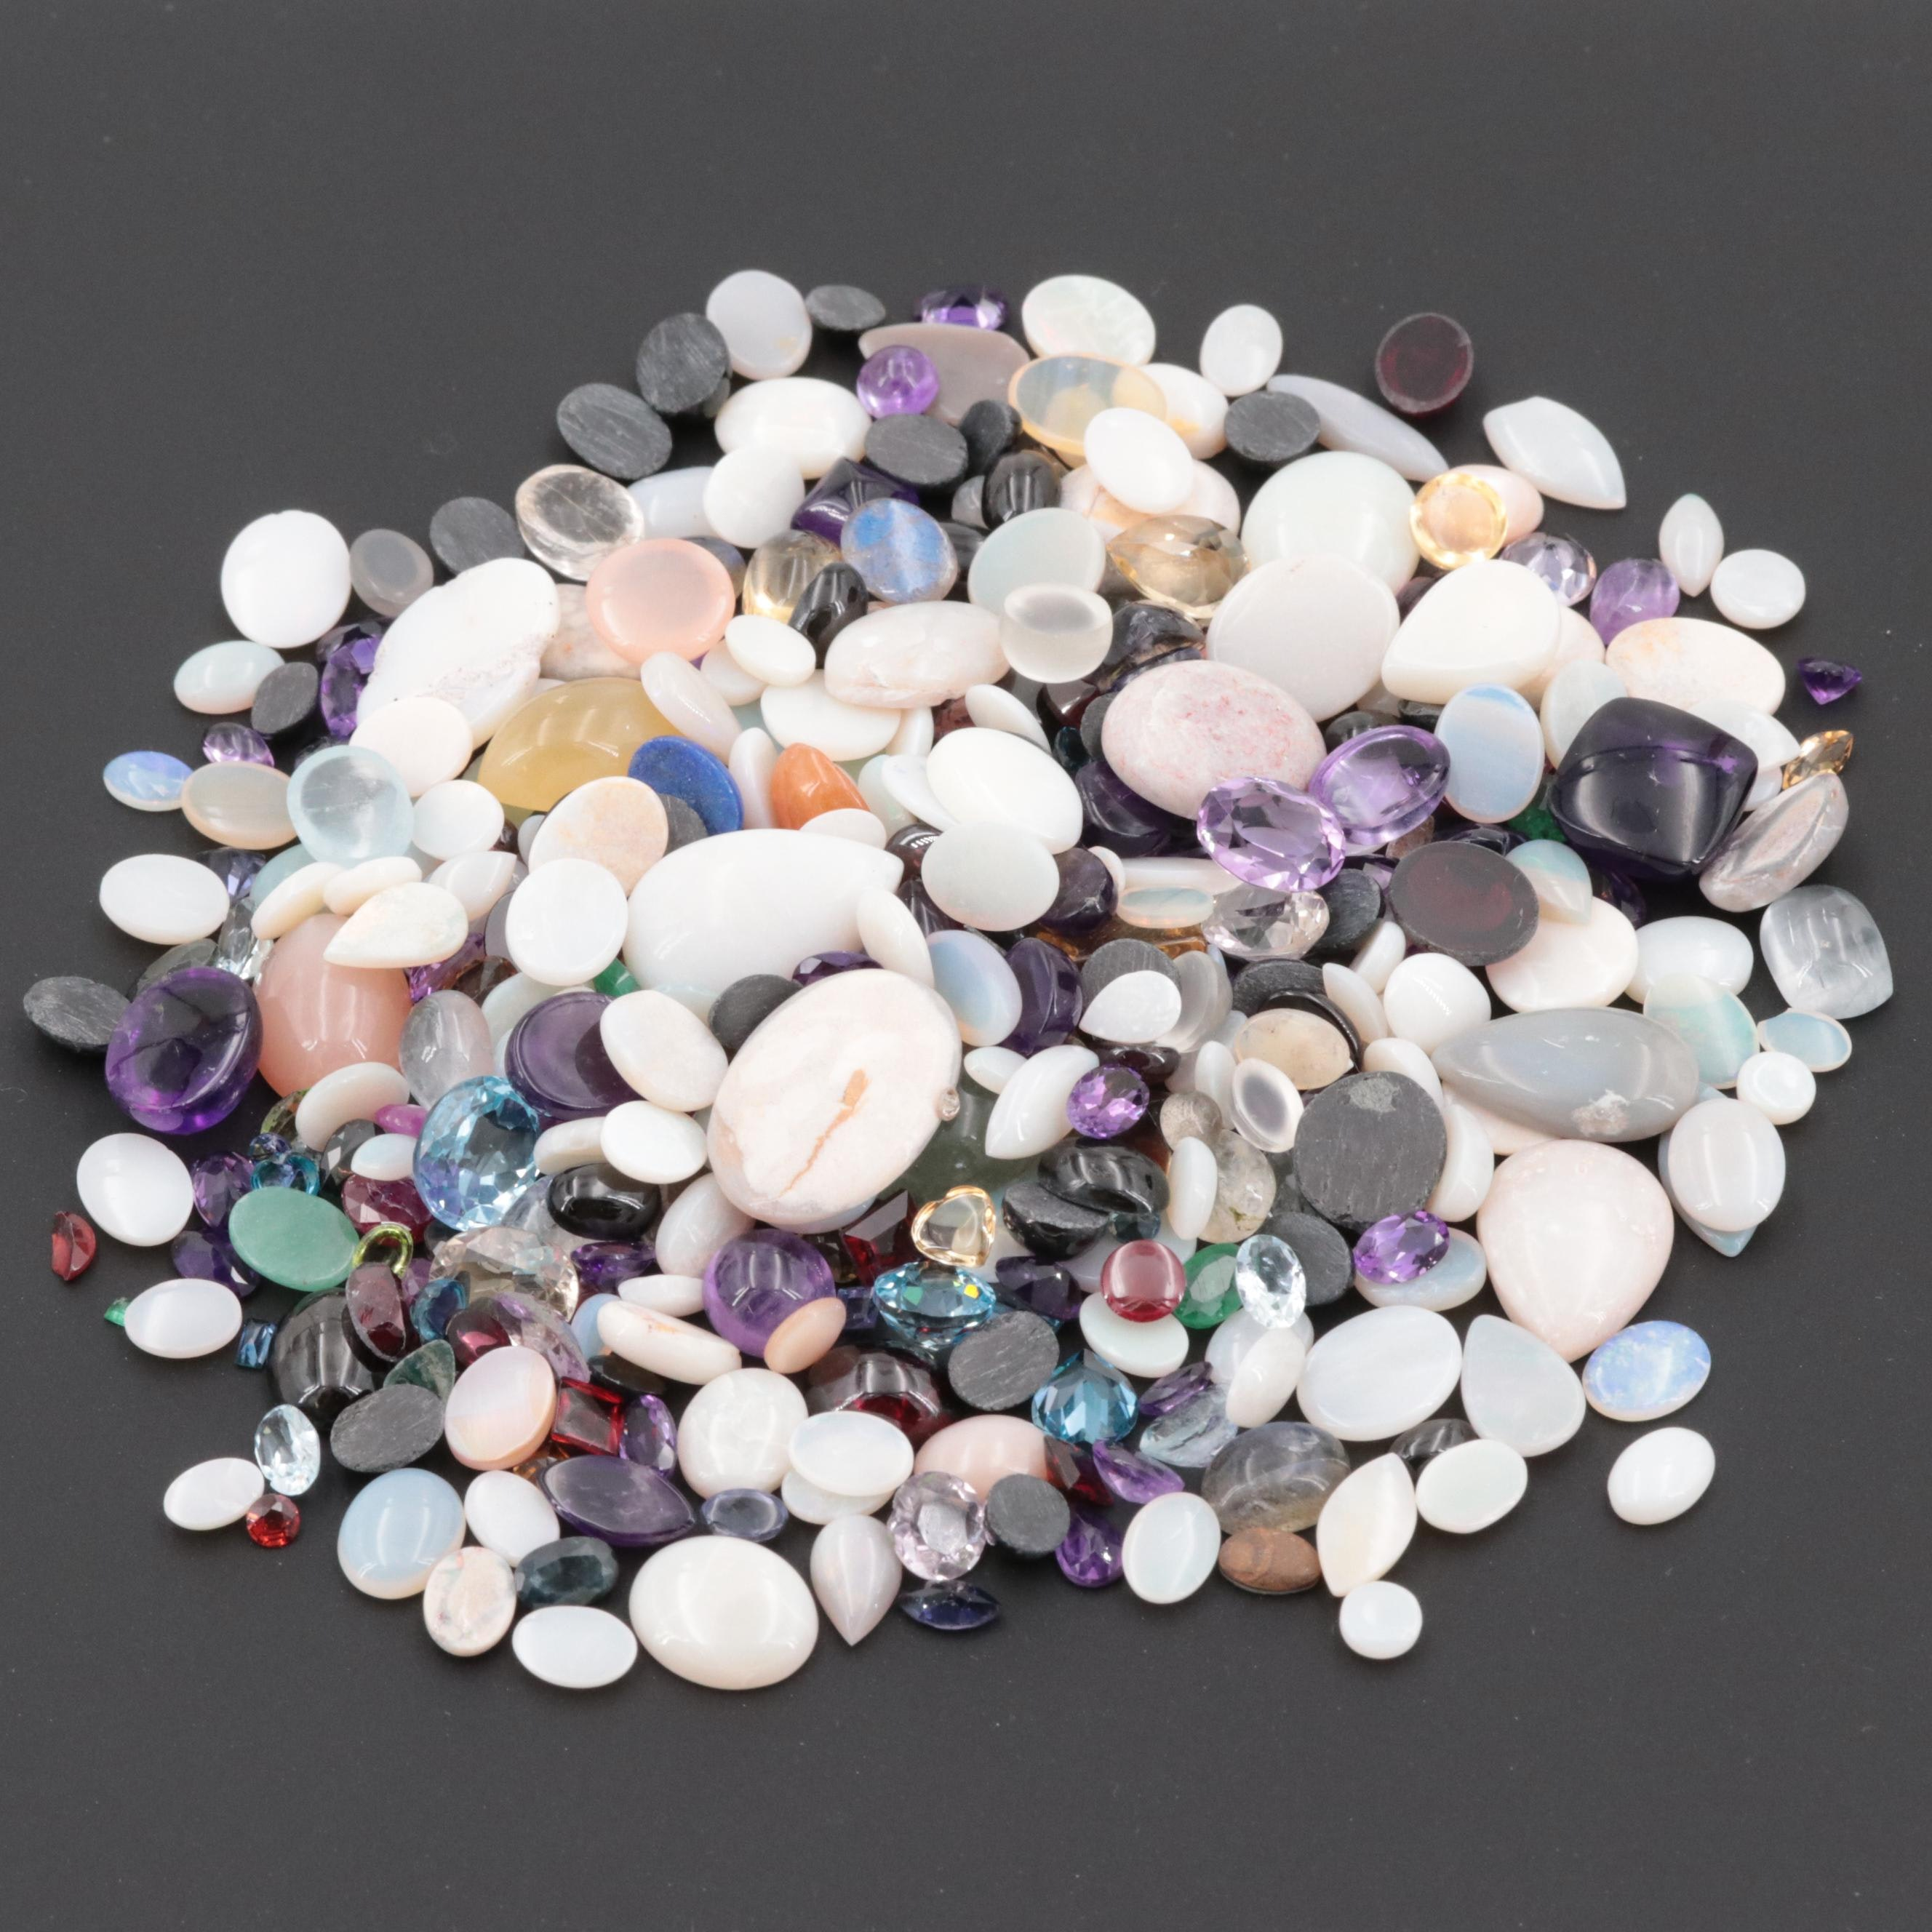 Loose 345.71 Mixed Lot Gemstones